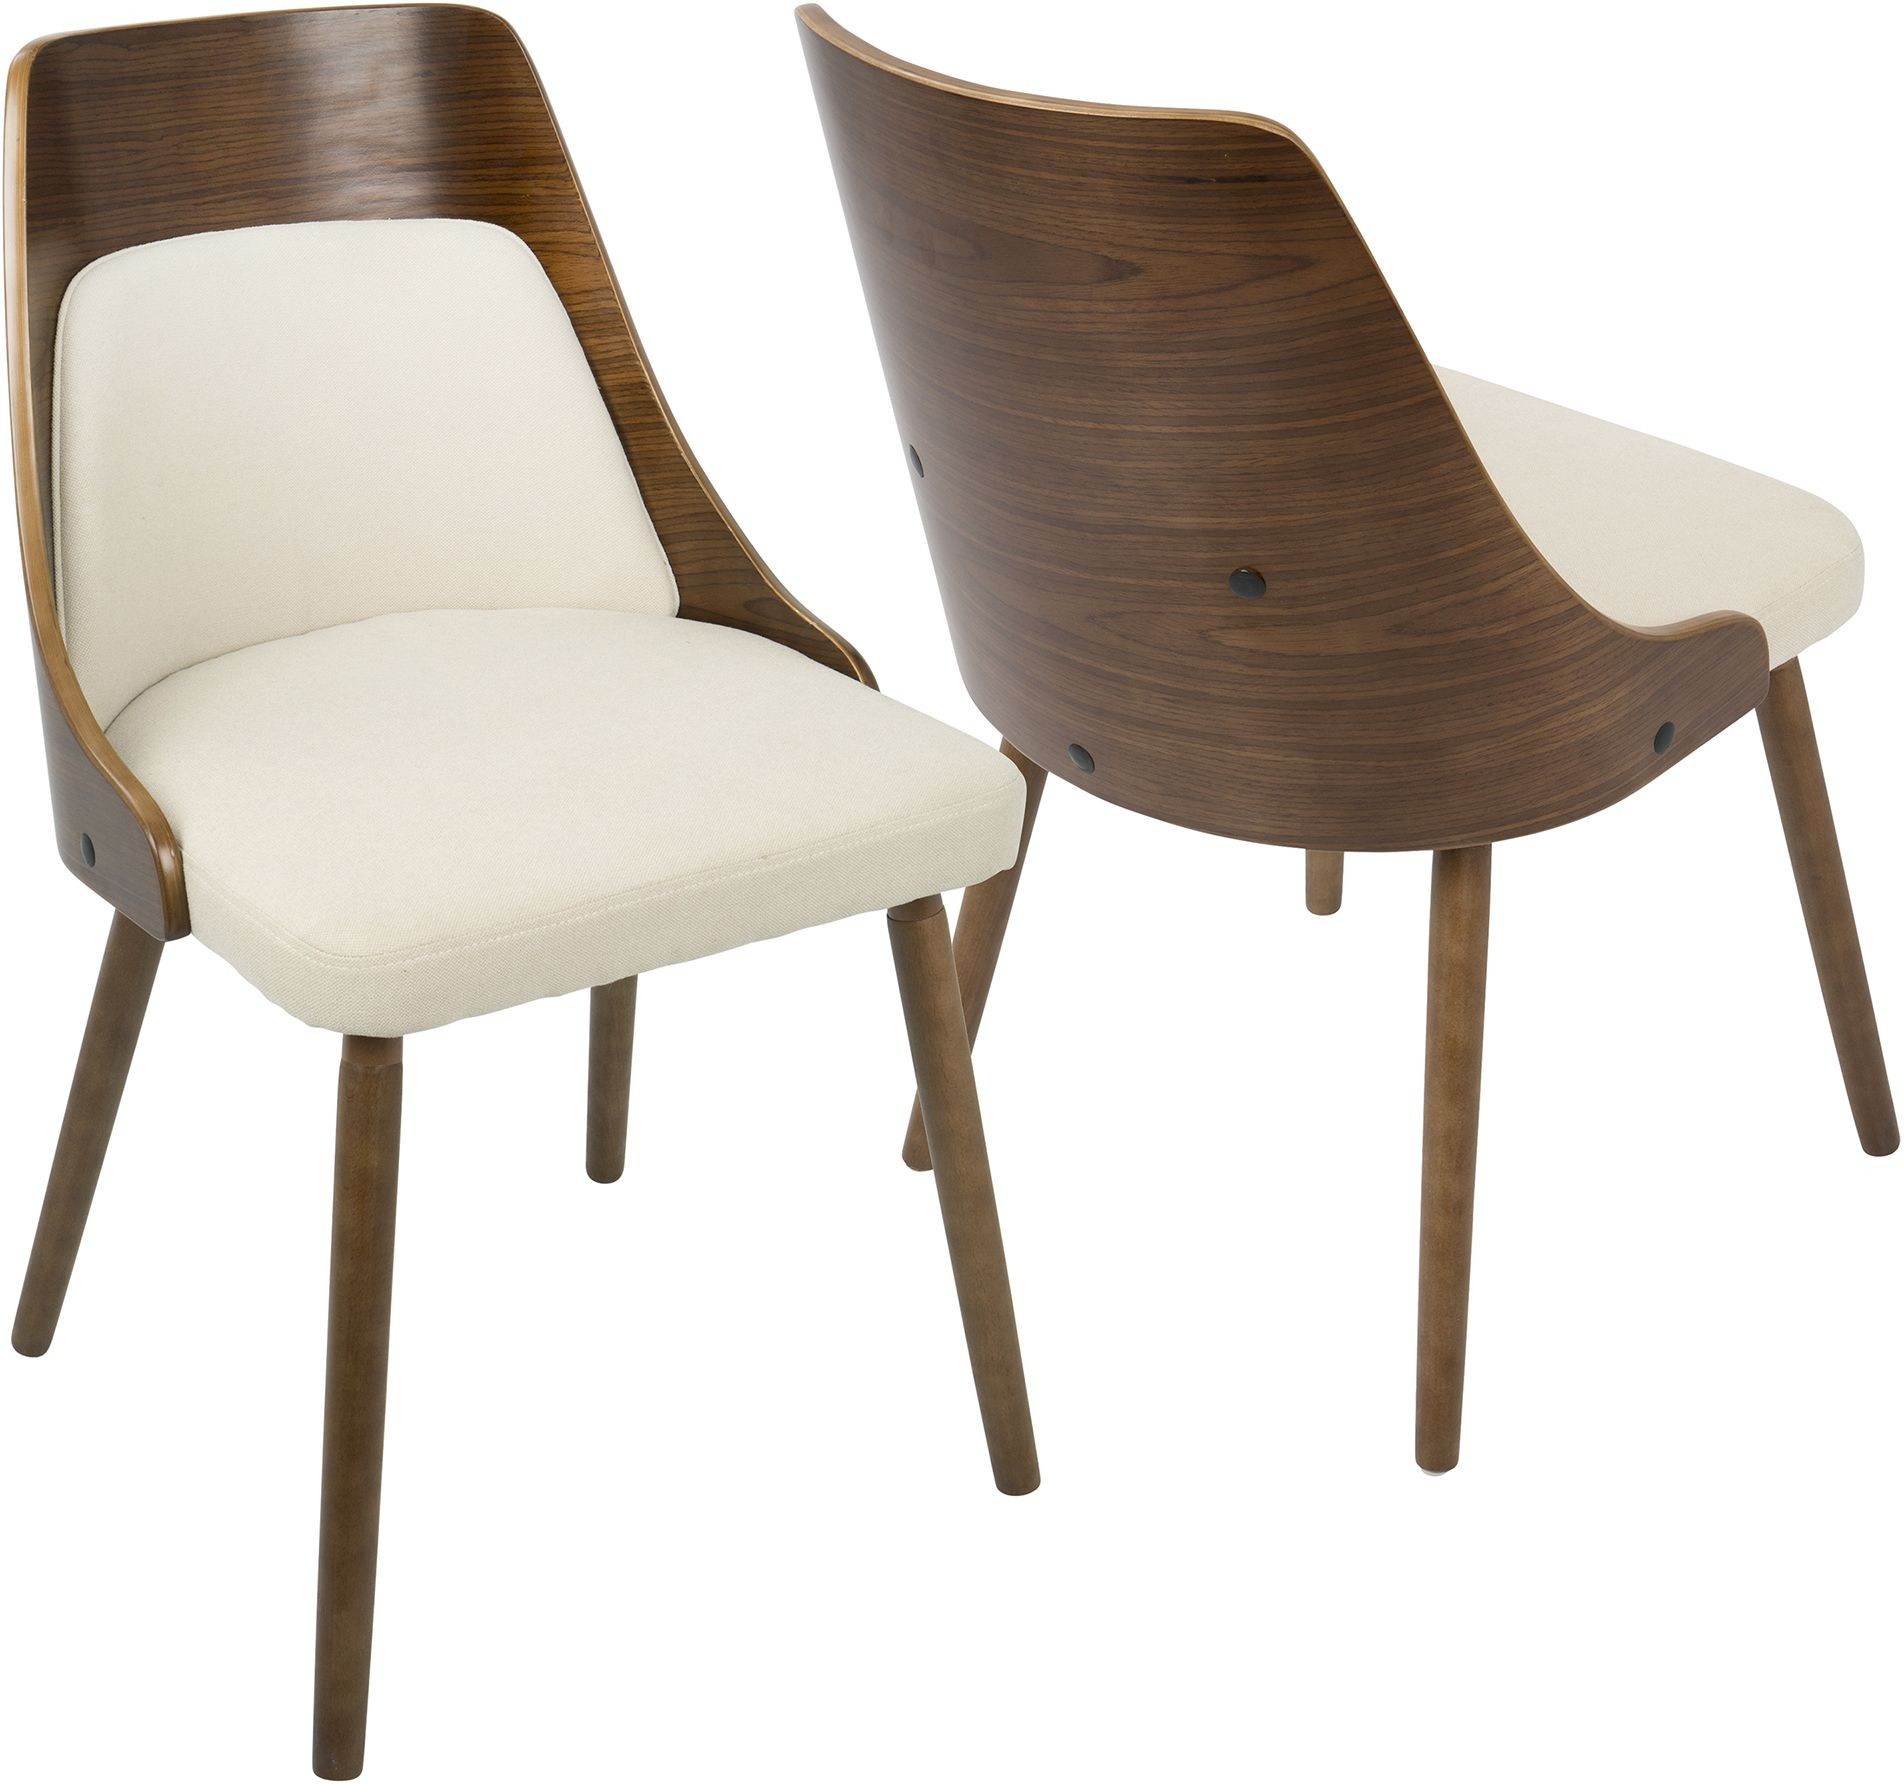 Cream Chairs Anabelle Walnut And Cream Dining Chair From Lumisource